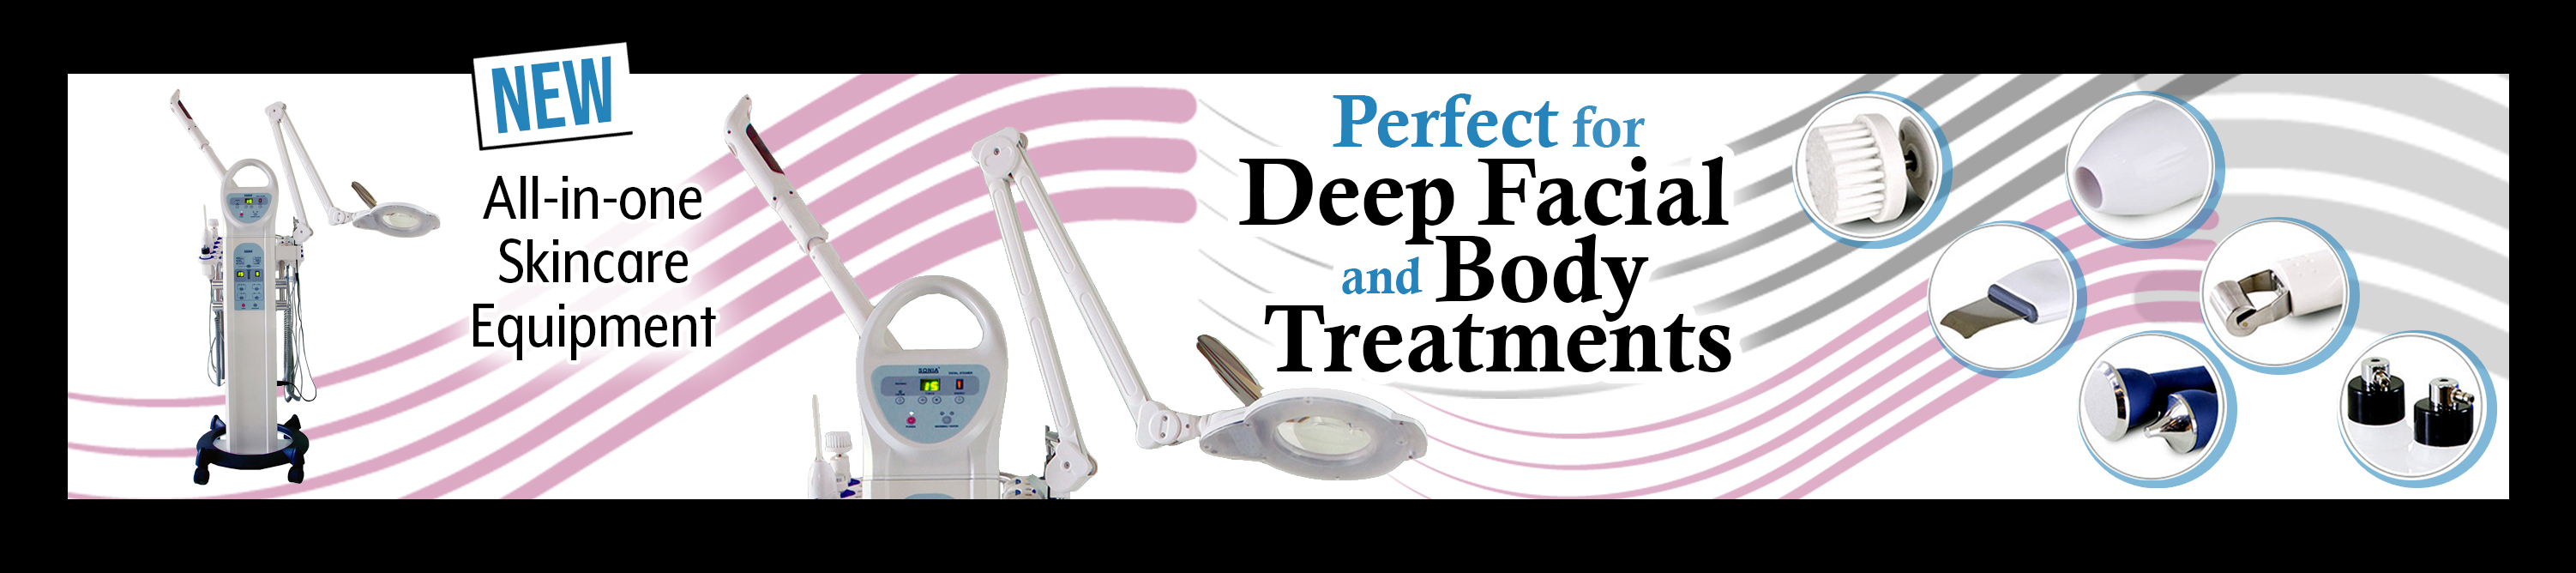 Multi-function beauty instrument